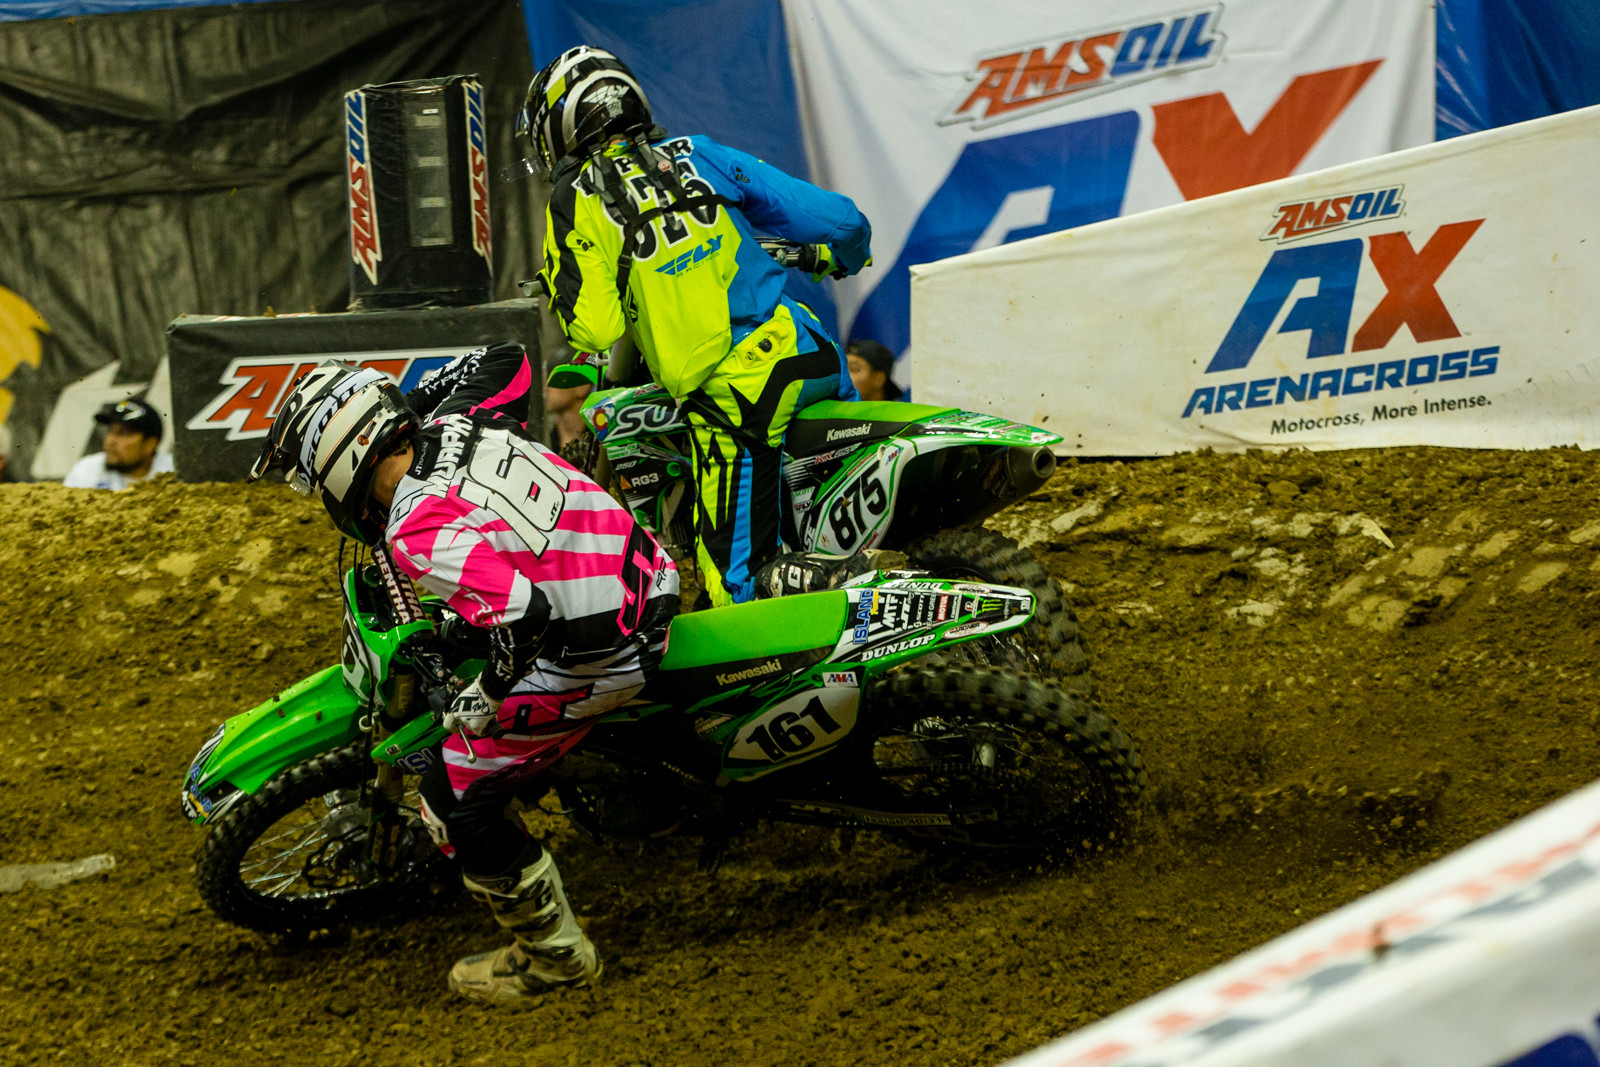 Arenacross - Photo Gallery: Ontario Arenacross - Saturday Night - Motocross Pictures - Vital MX